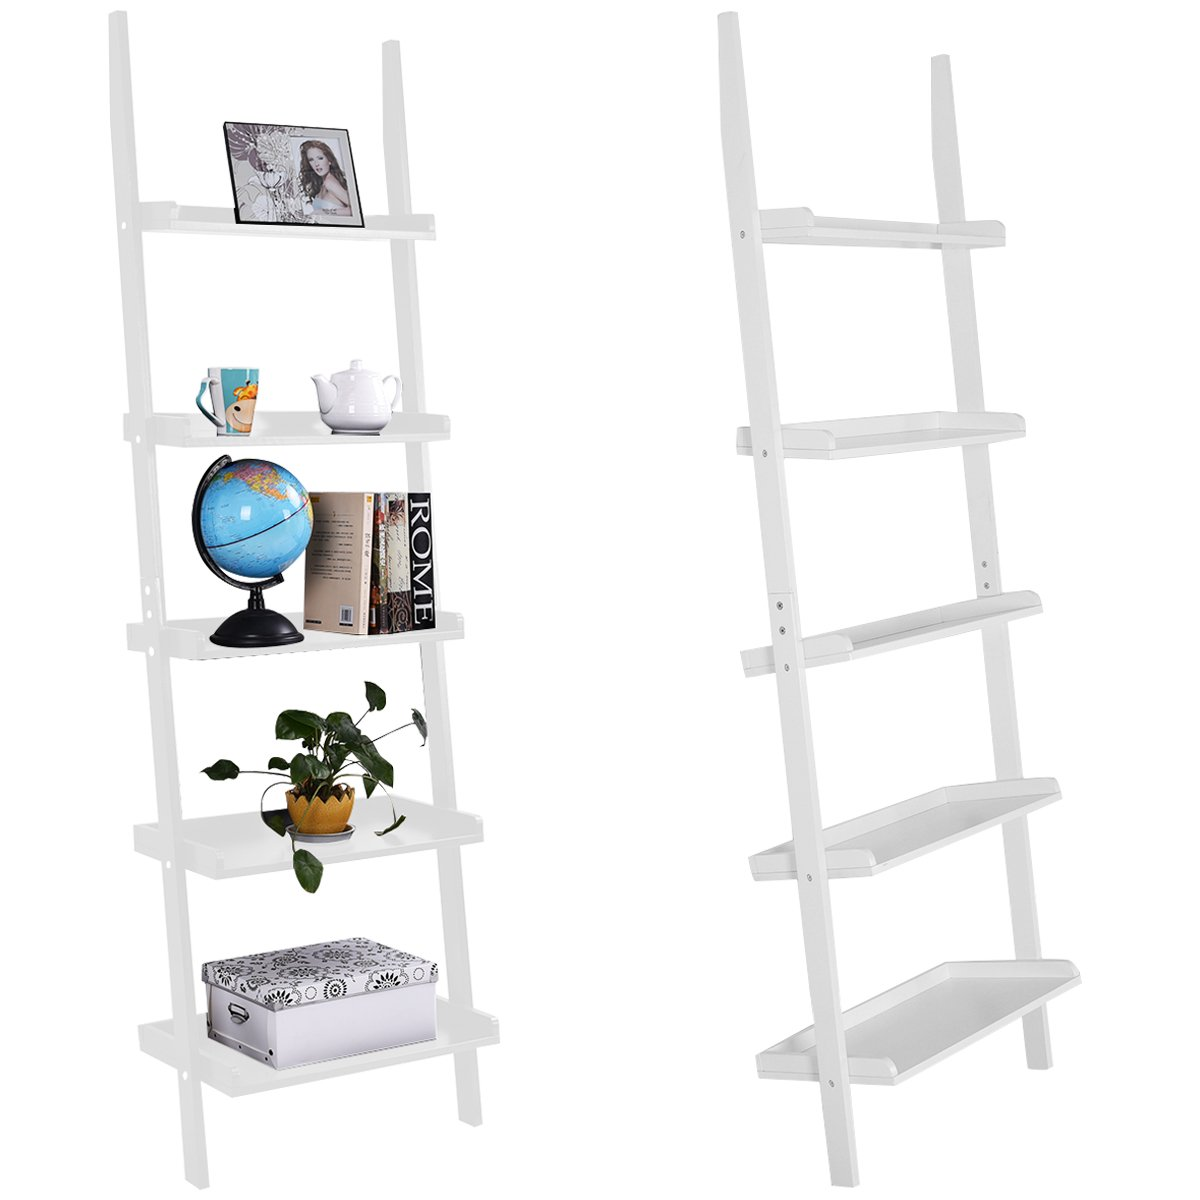 CASART 5 Tier Wooden Wall Ladder Shelf Leaning Unit Rack Bookcase Display Holder Stand Black/White (White)